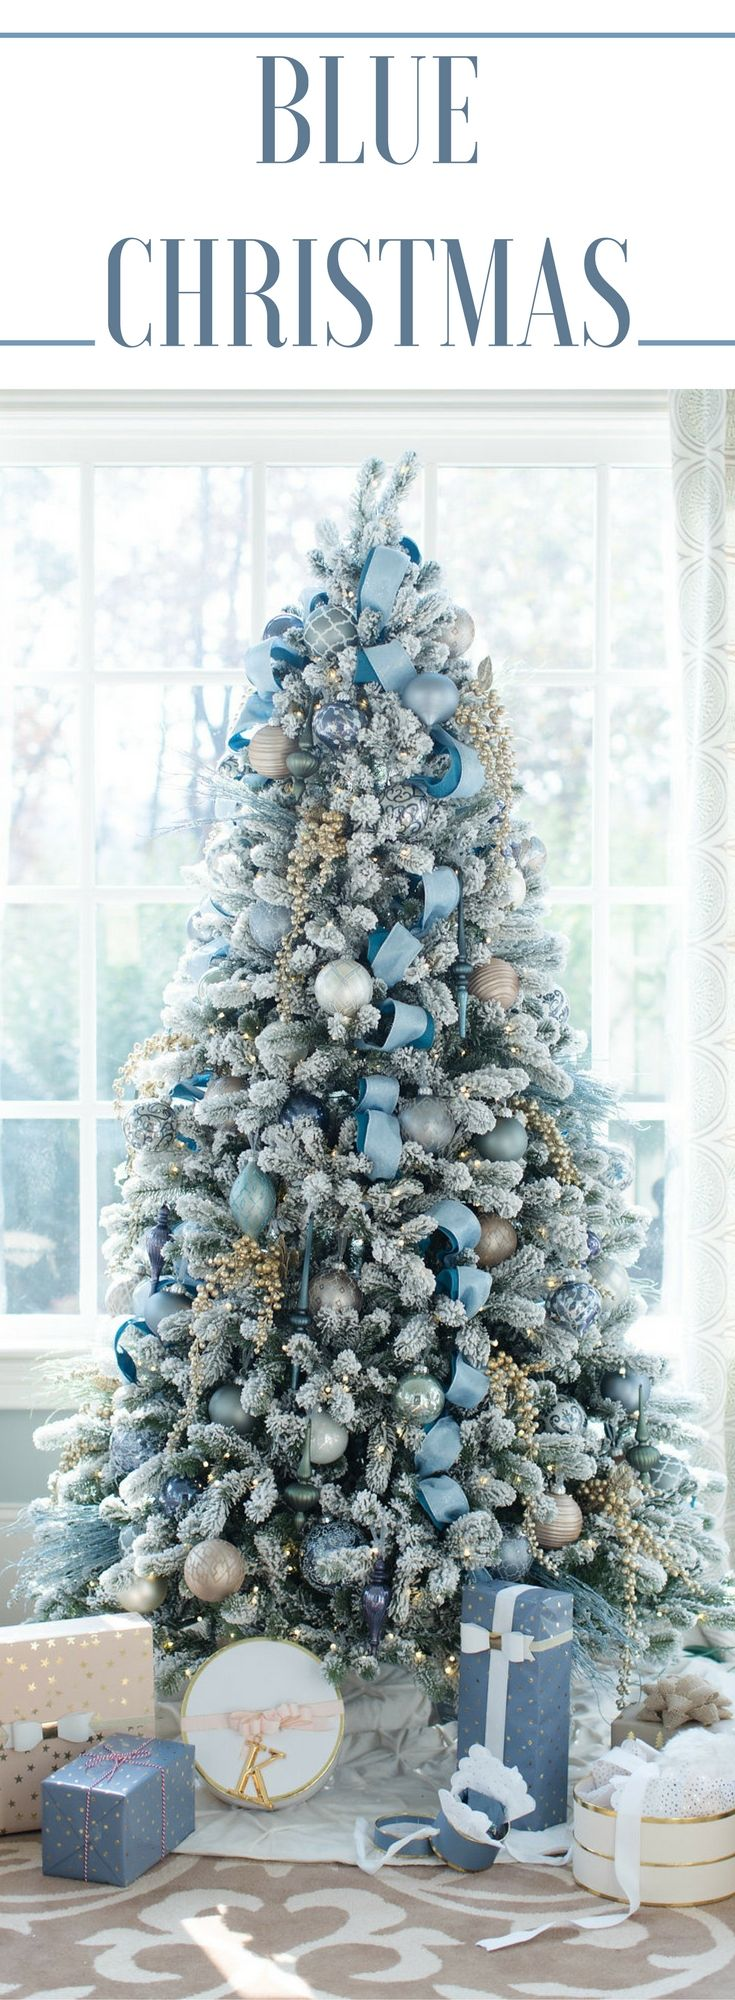 Best 25+ Blue christmas decor ideas on Pinterest